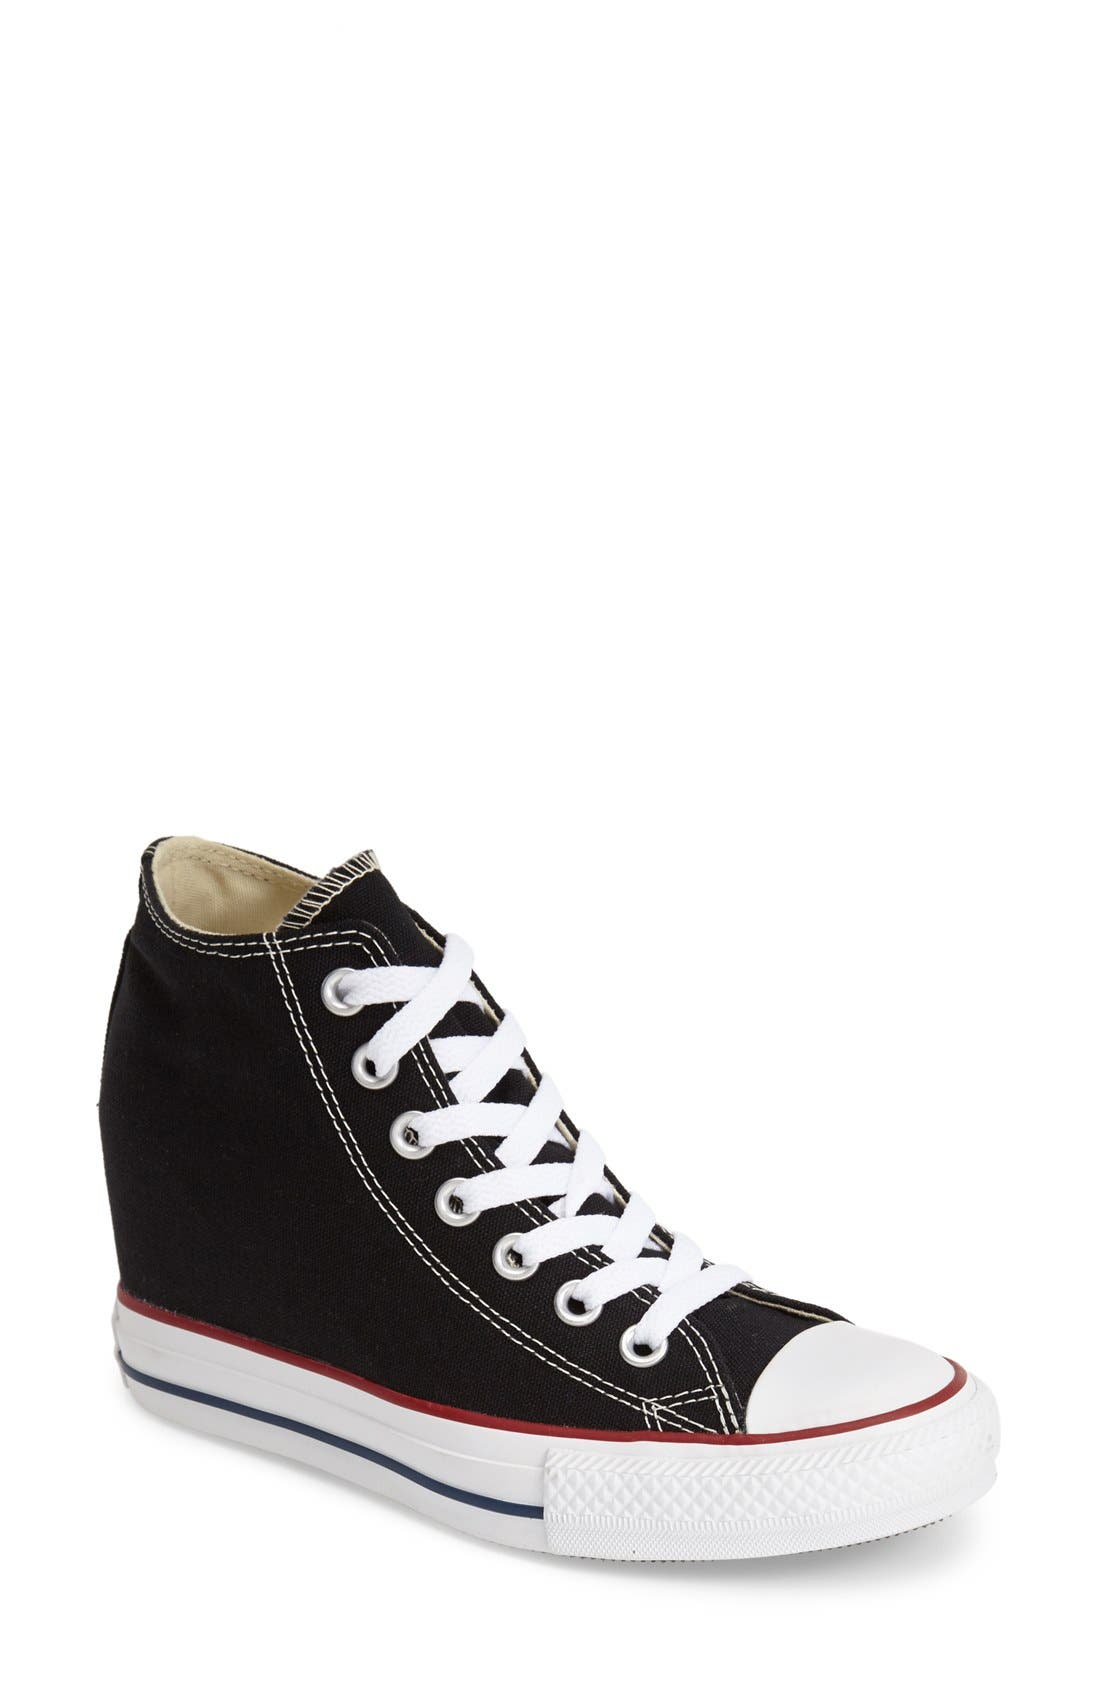 CONVERSE Chuck Taylor<sup>®</sup> 'Lux Corel' High Top Sneaker, Main, color, 001